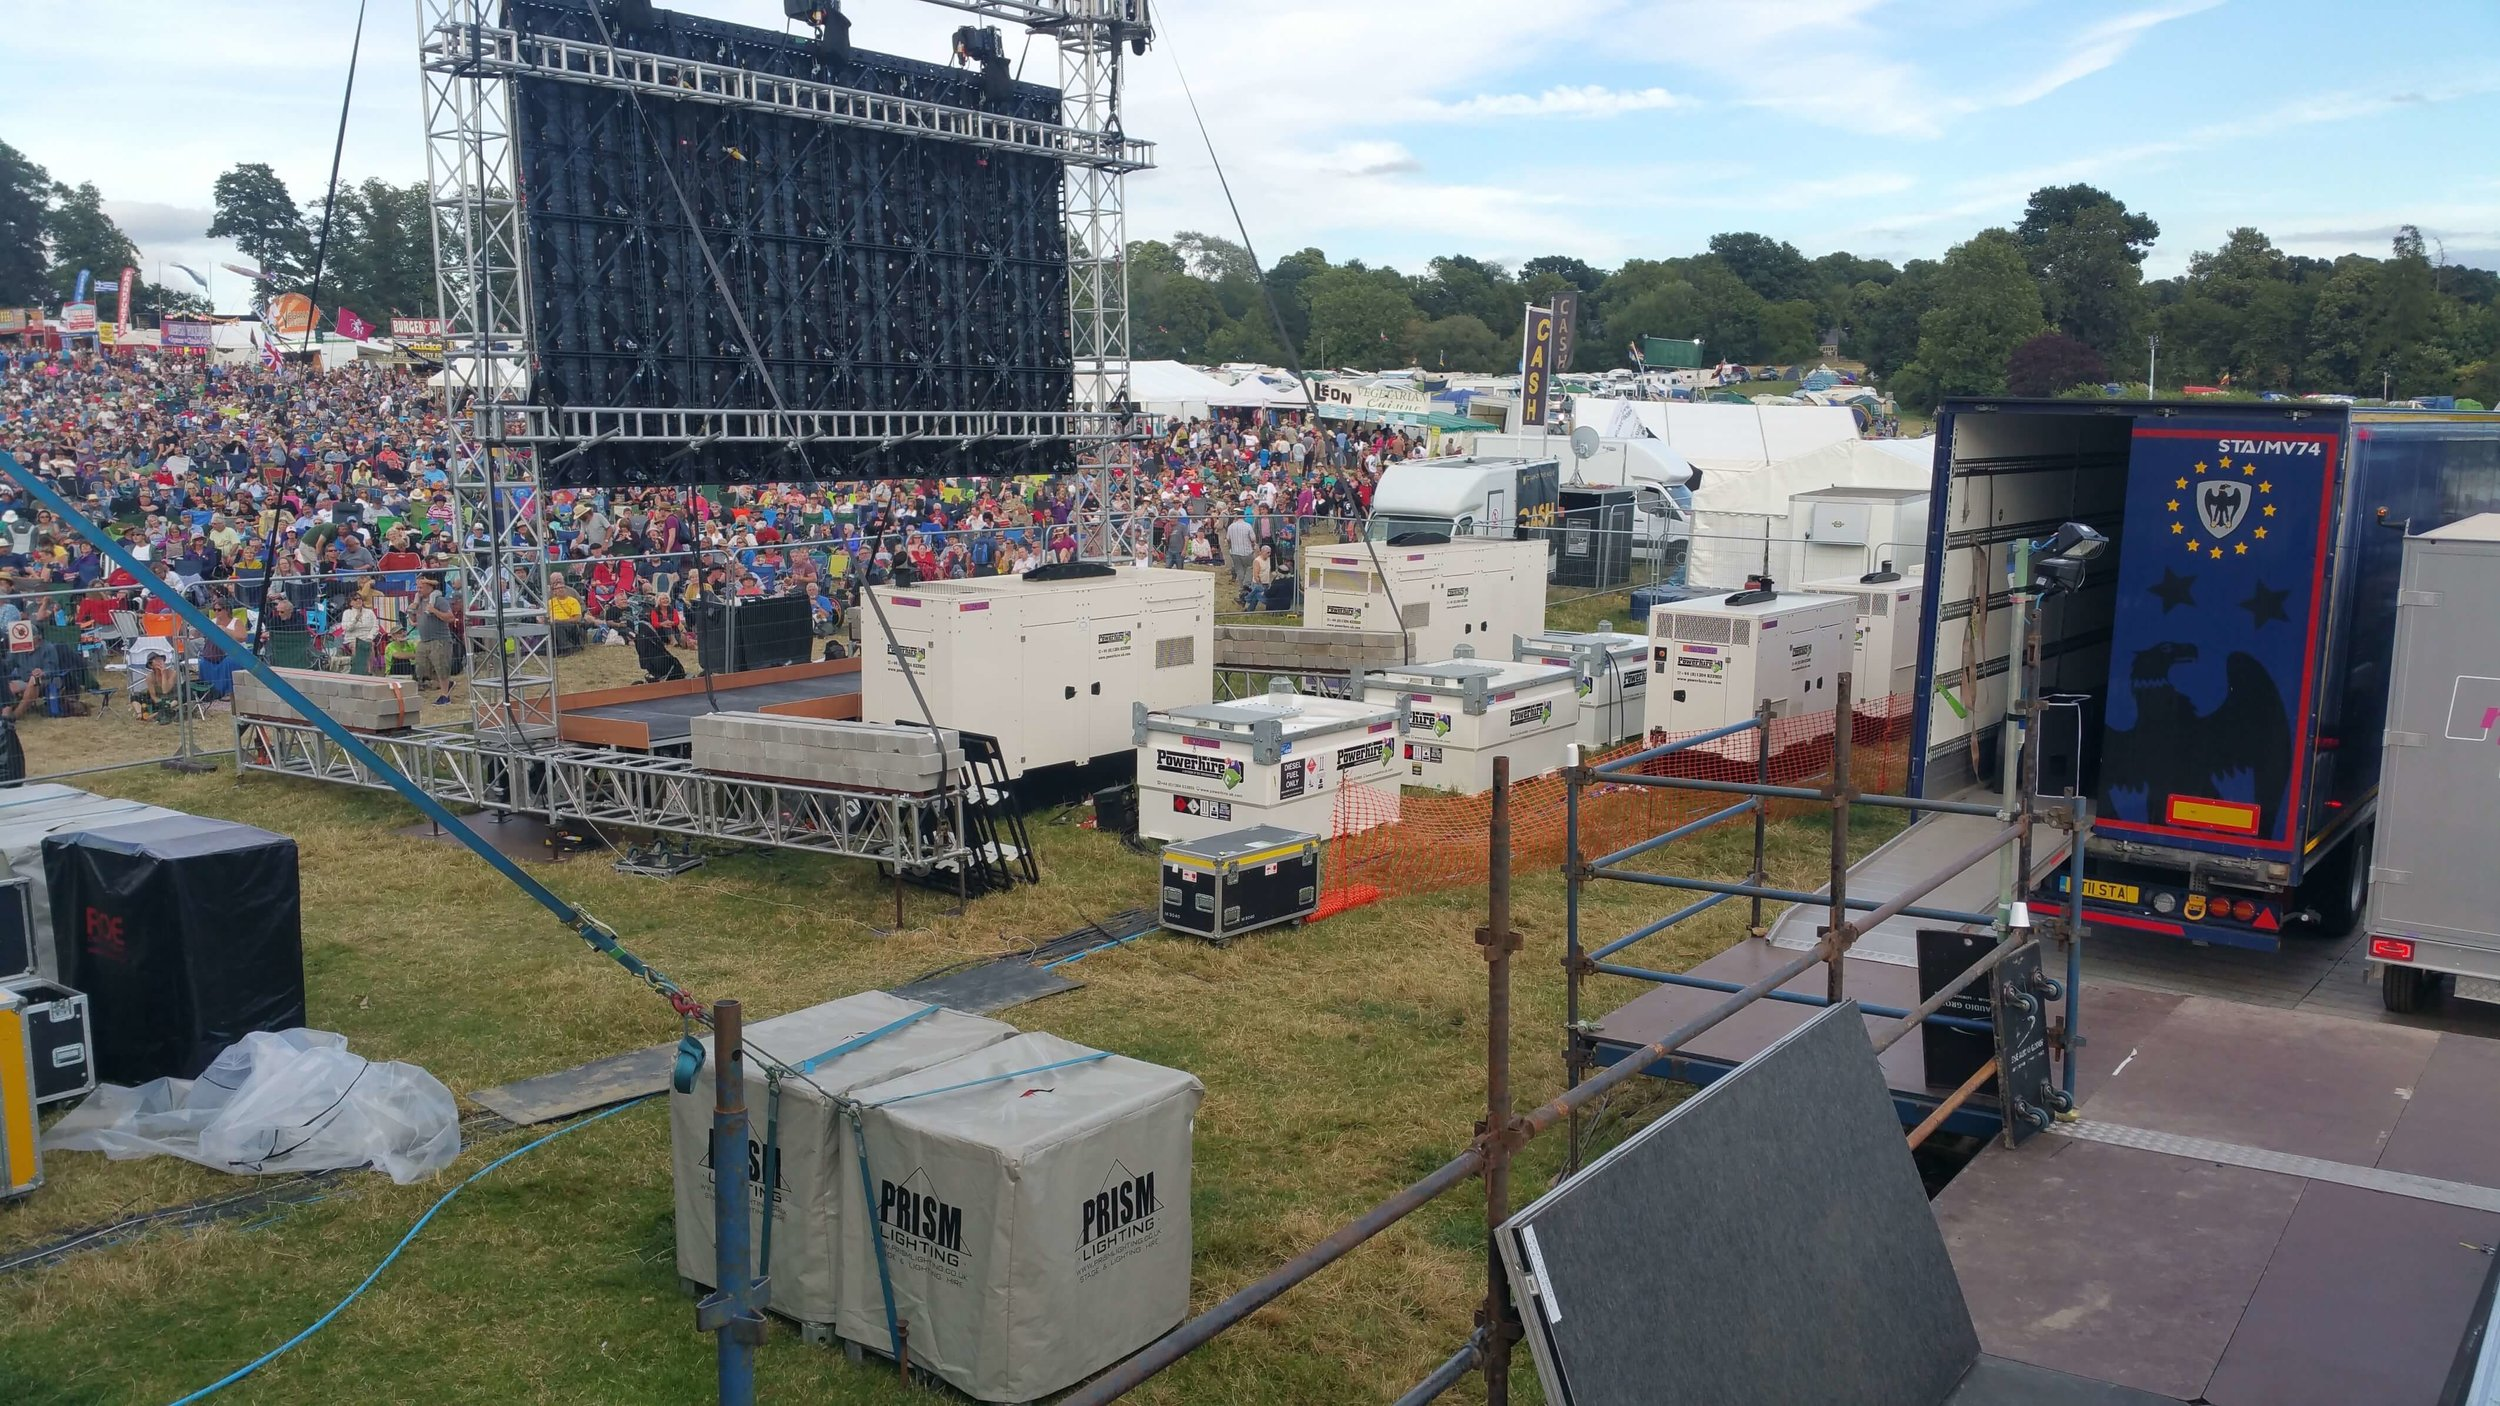 Festival-generator-power-at-Cropredy.jpg